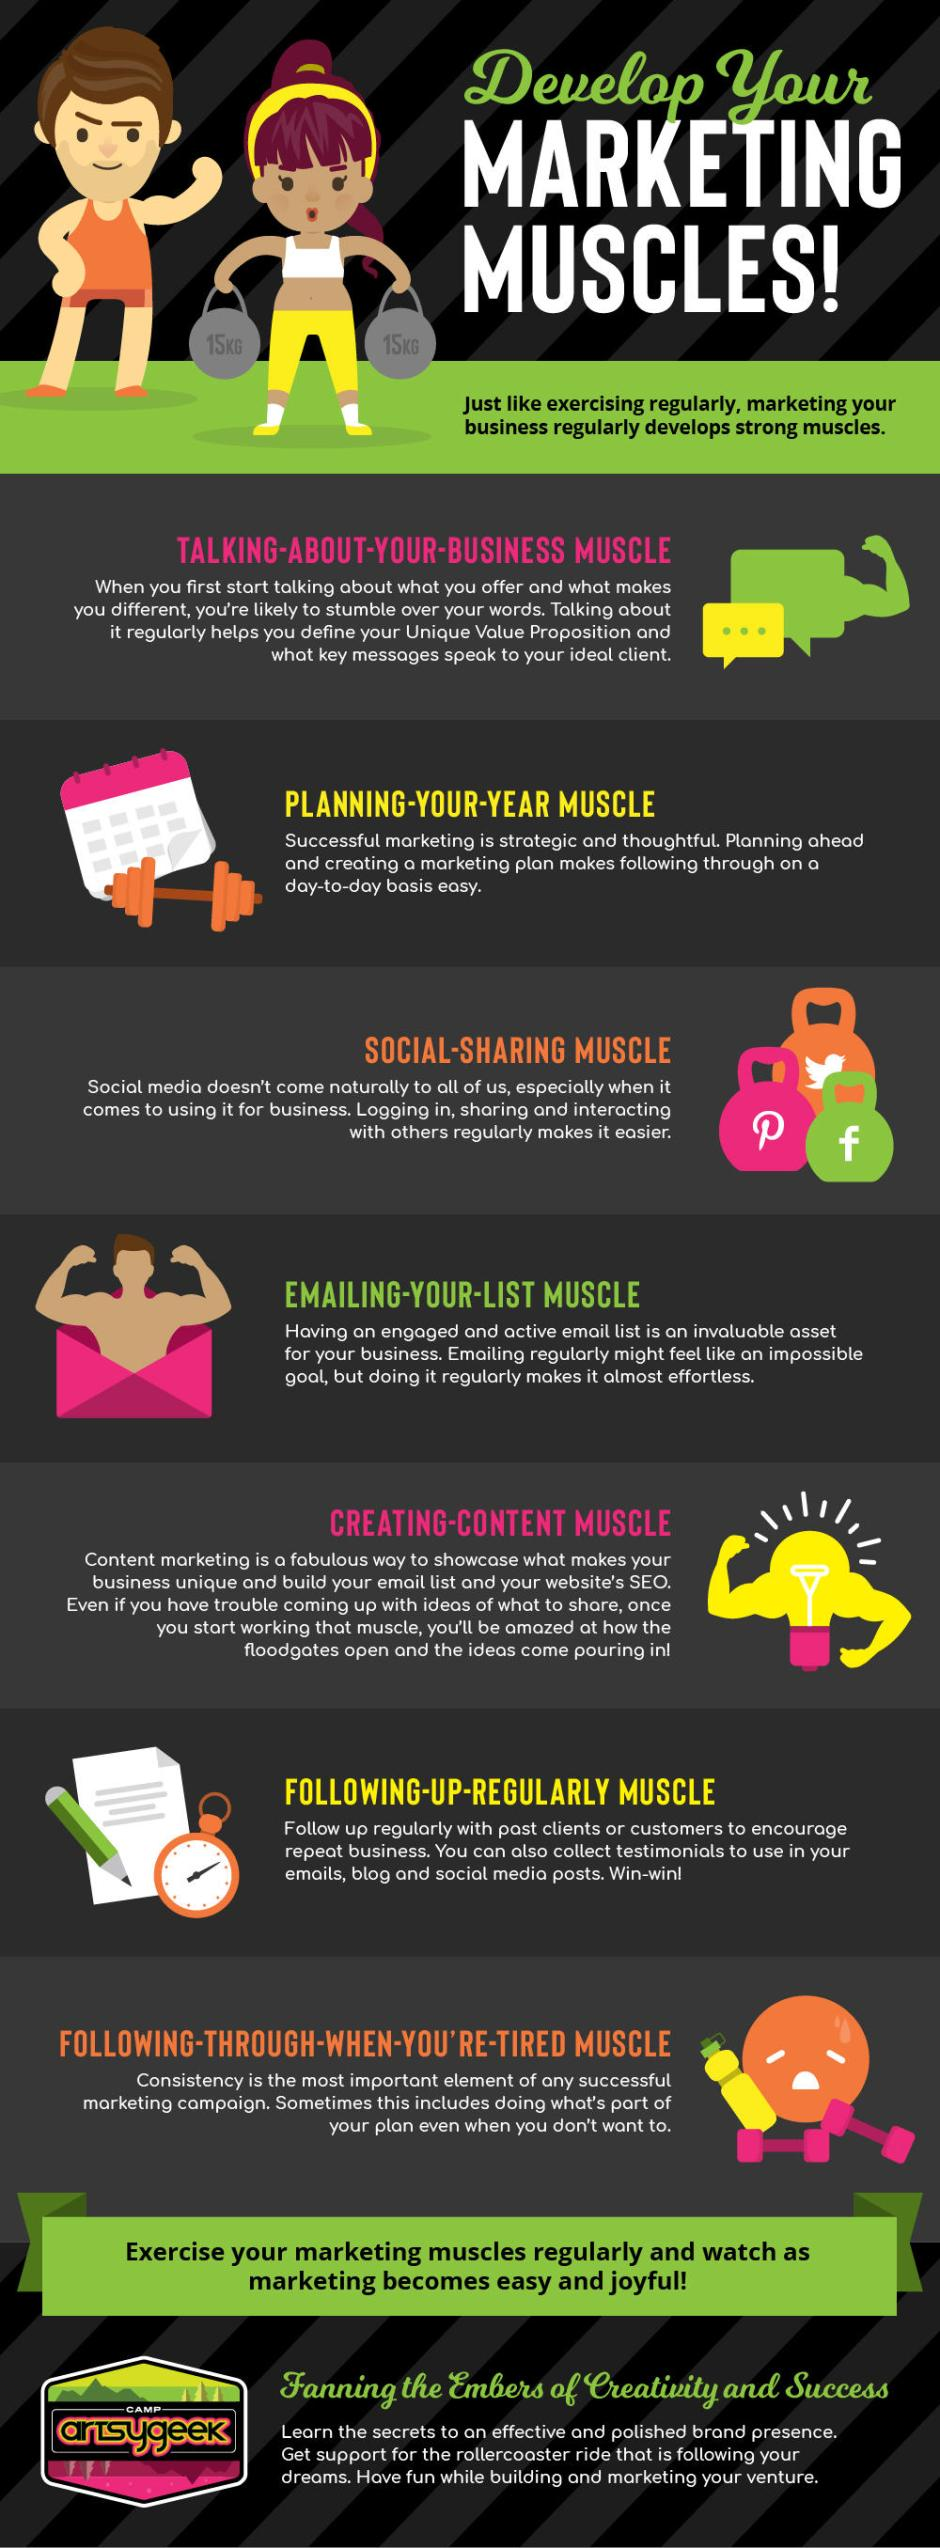 Develop Your Marketing Muscles Infographic